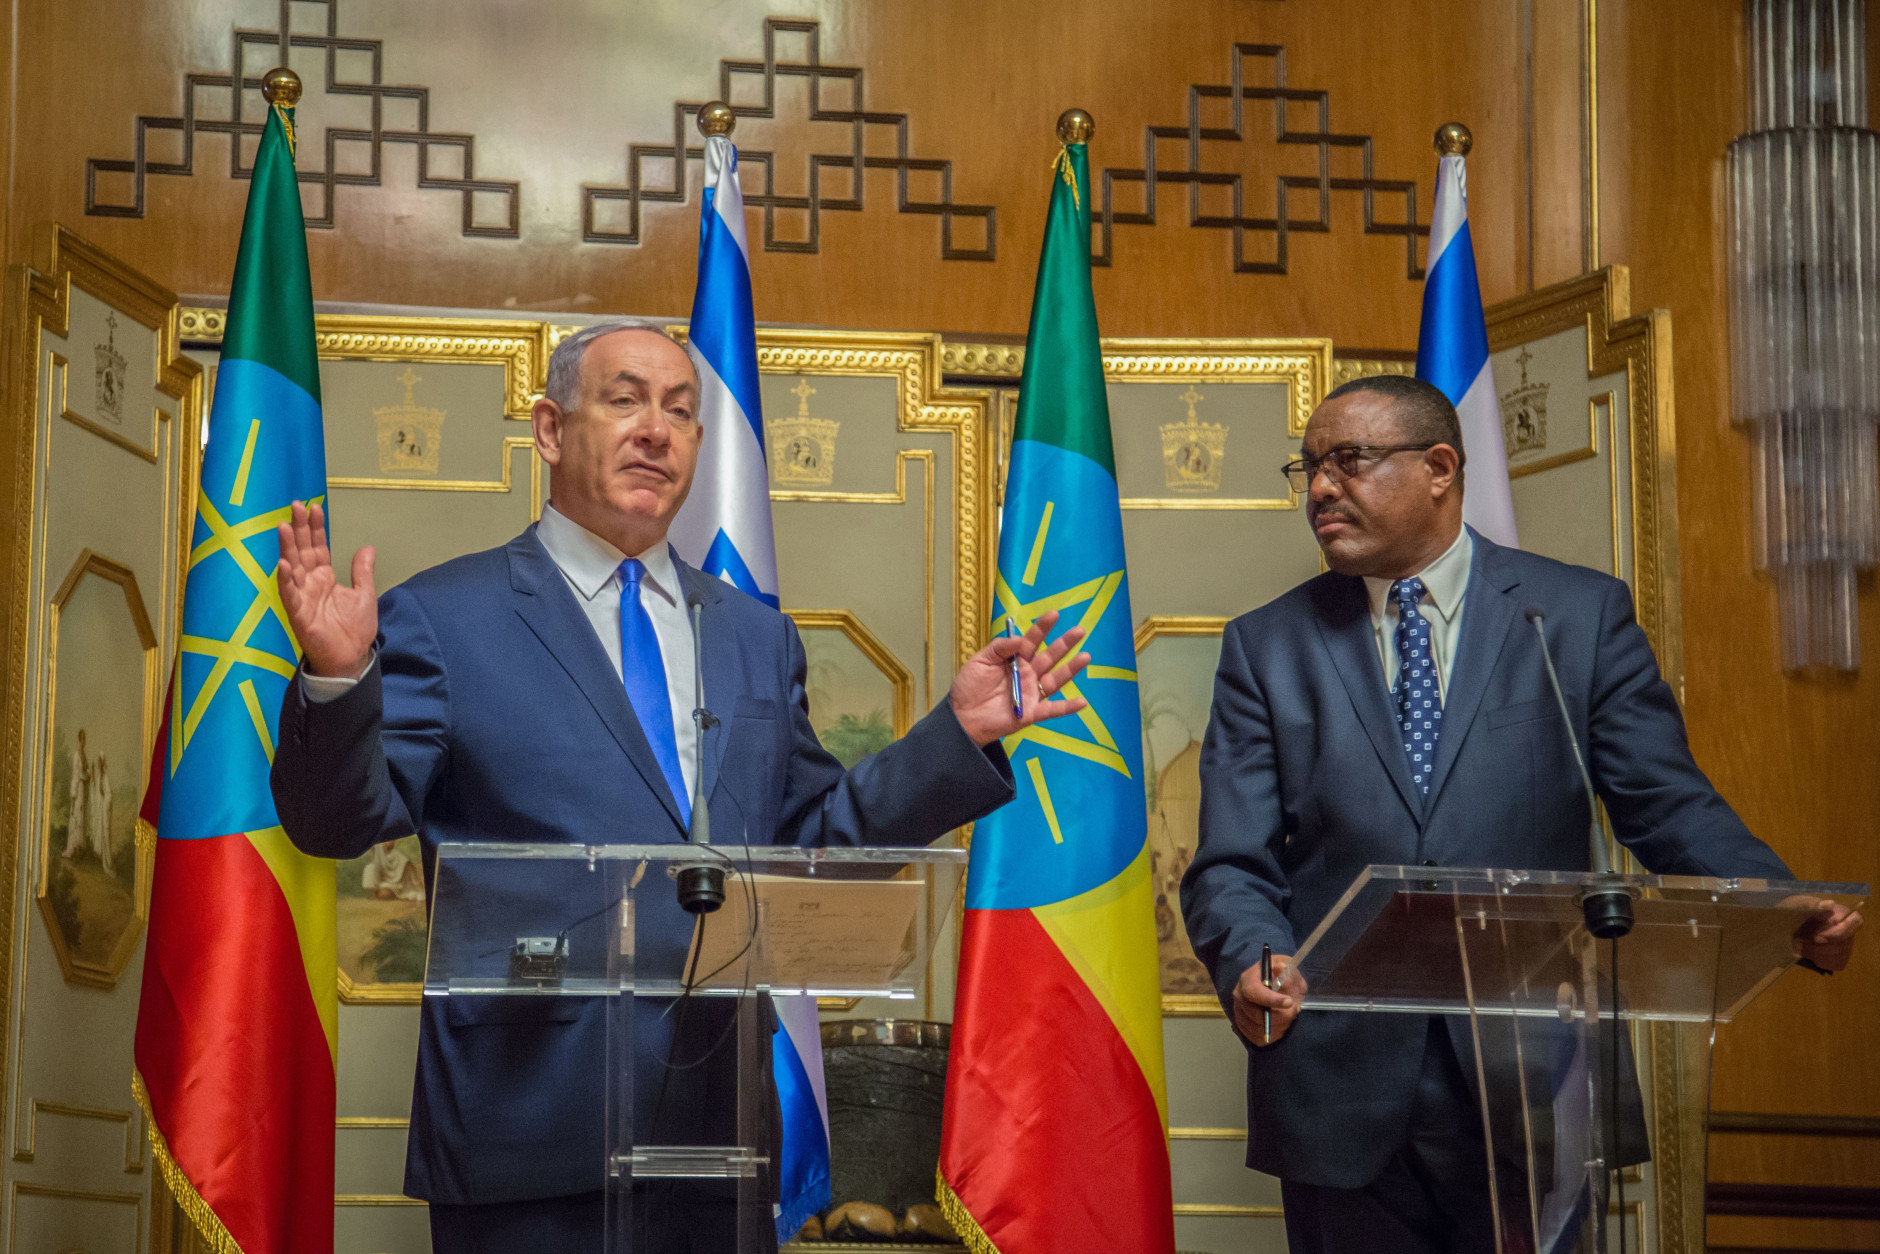 Israeli Prime Minister Benjamin Netanyahu, left, and Ethiopian Prime Minister Hailemariam Dessalegn speak during a joint press conference in Addis Ababa, Ethiopia, Thursday, July 7, 2016. Netanyahu is on one day state visit to Ethiopia. (AP Photo/Mulugeta Ayene)